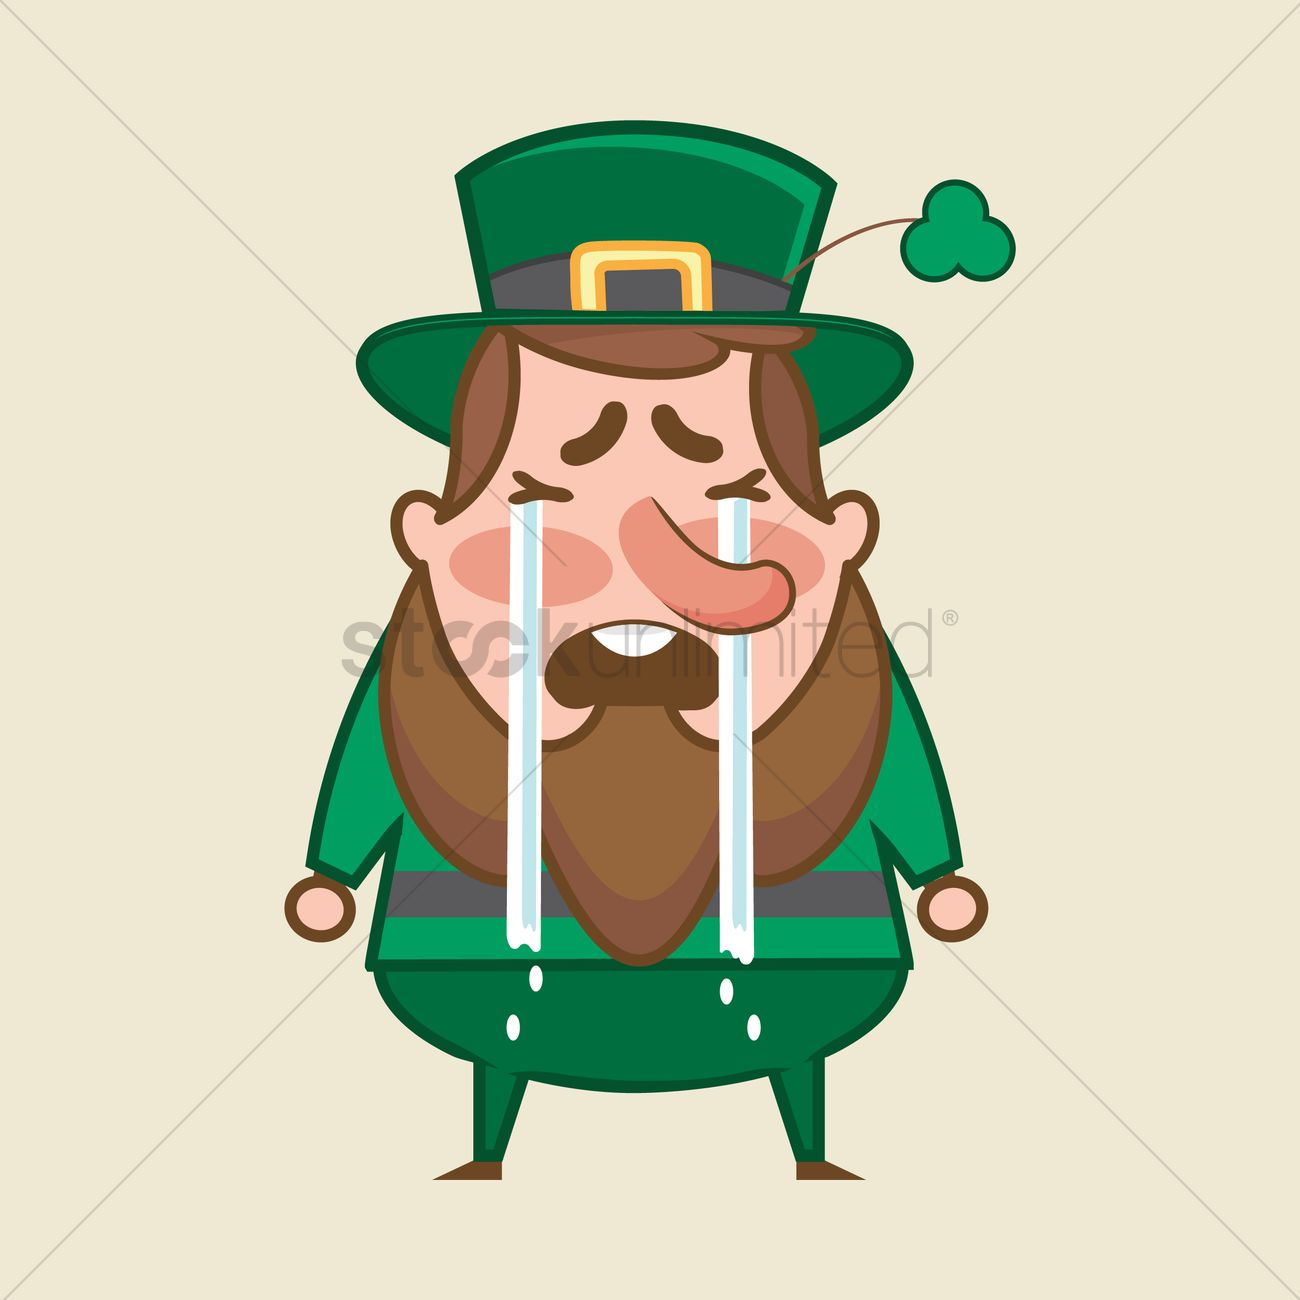 Leprechaun crying vector image 1957113 stockunlimited leprechaun crying vector graphic altavistaventures Gallery